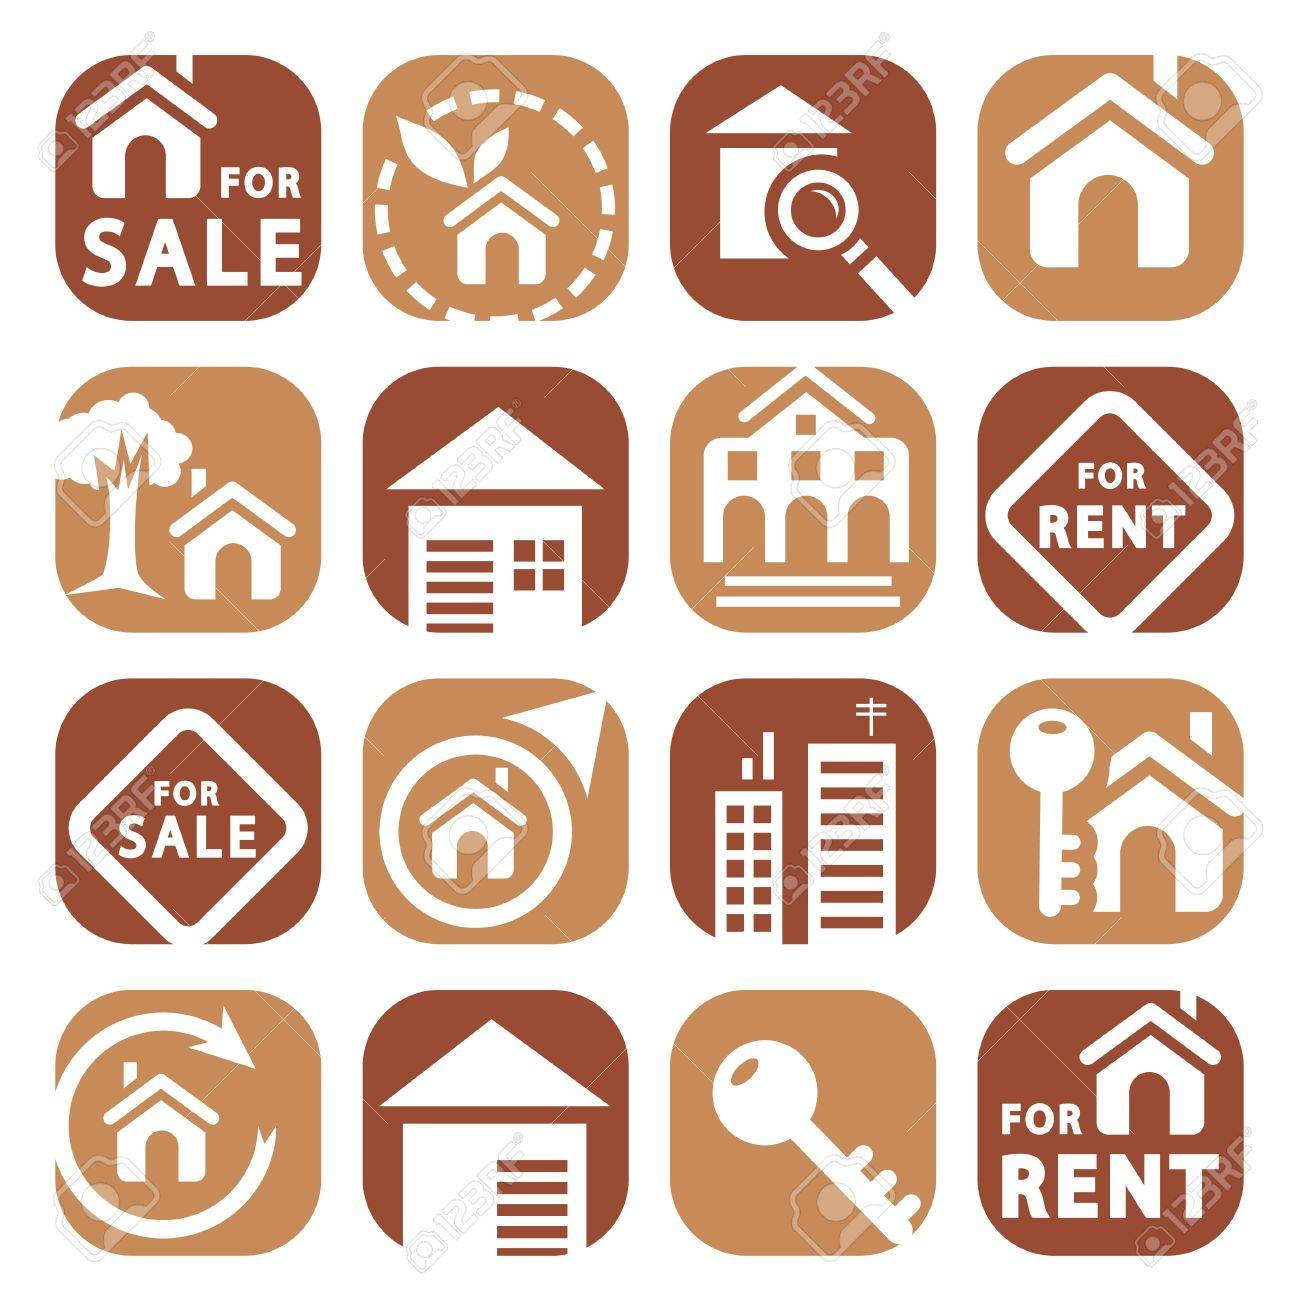 Color Building Icons Set Created For Mobile, Web And Applications Stock Vector - 20216010